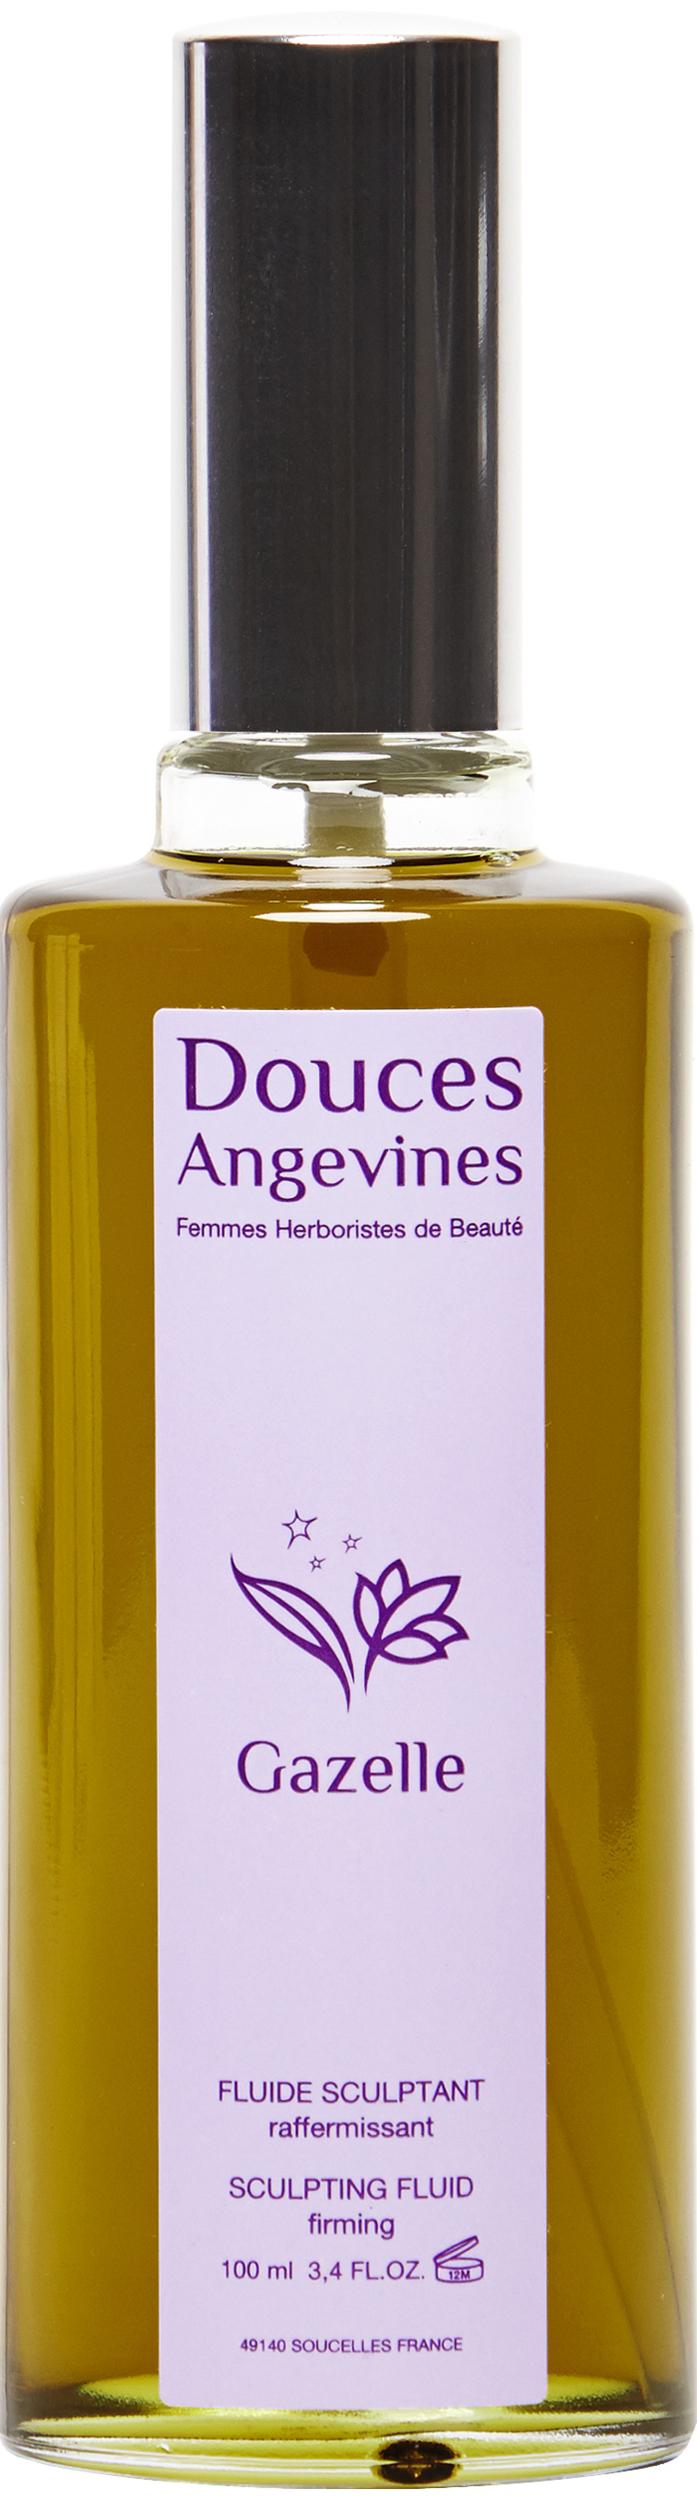 douces angevines gazelle